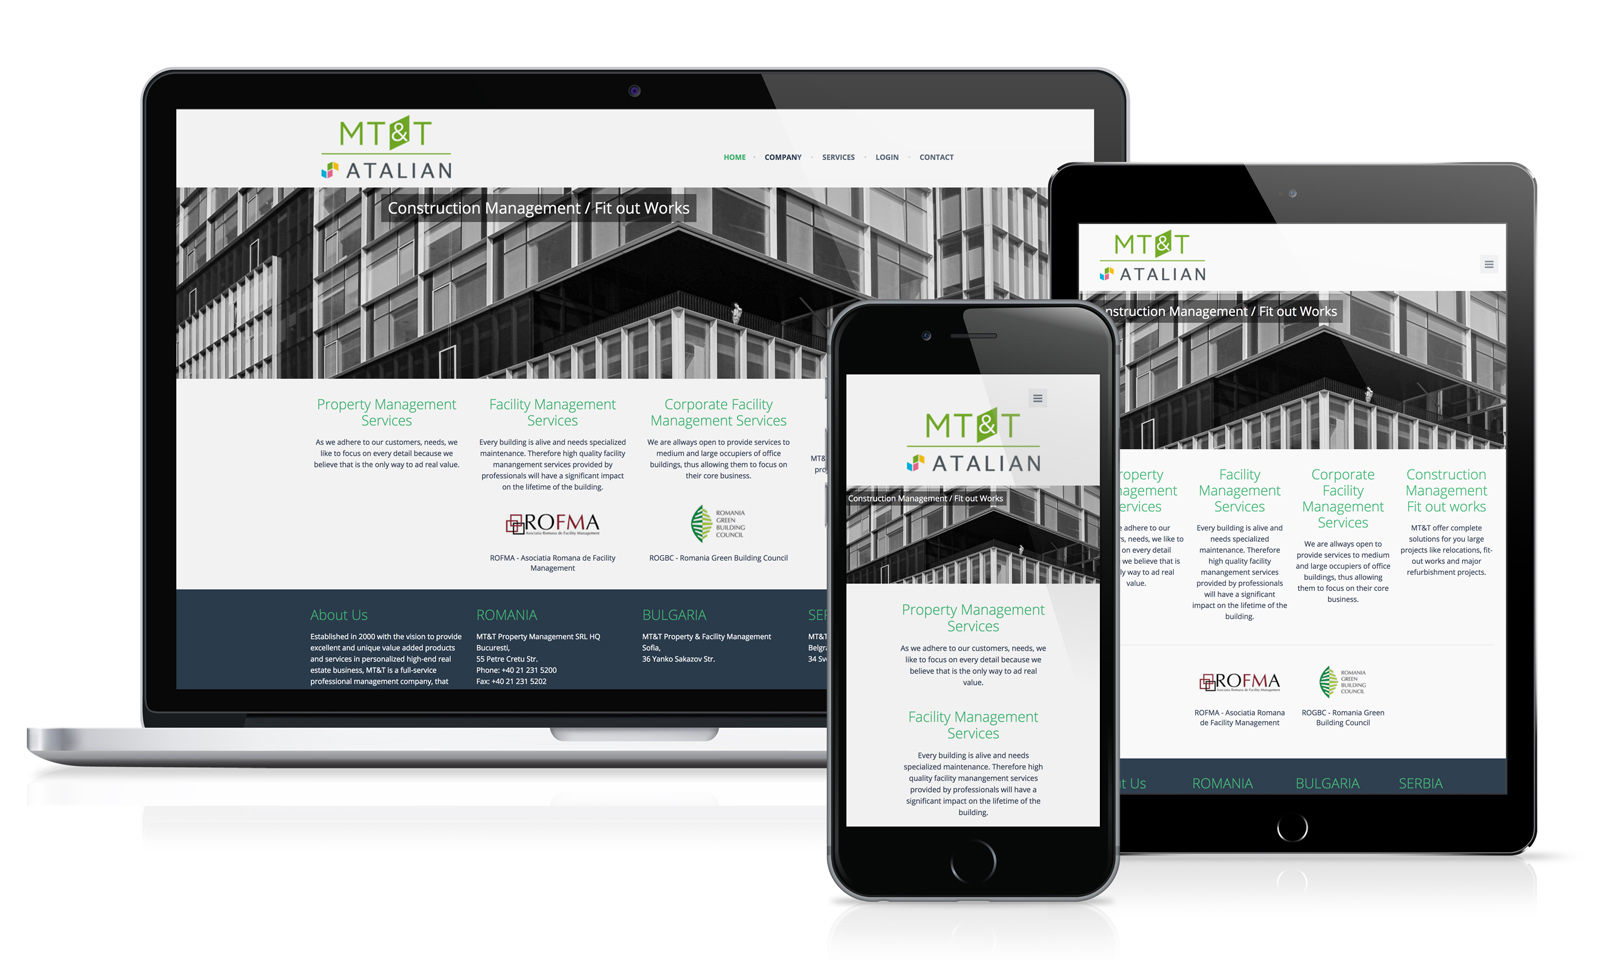 MT&T Property Management - web site